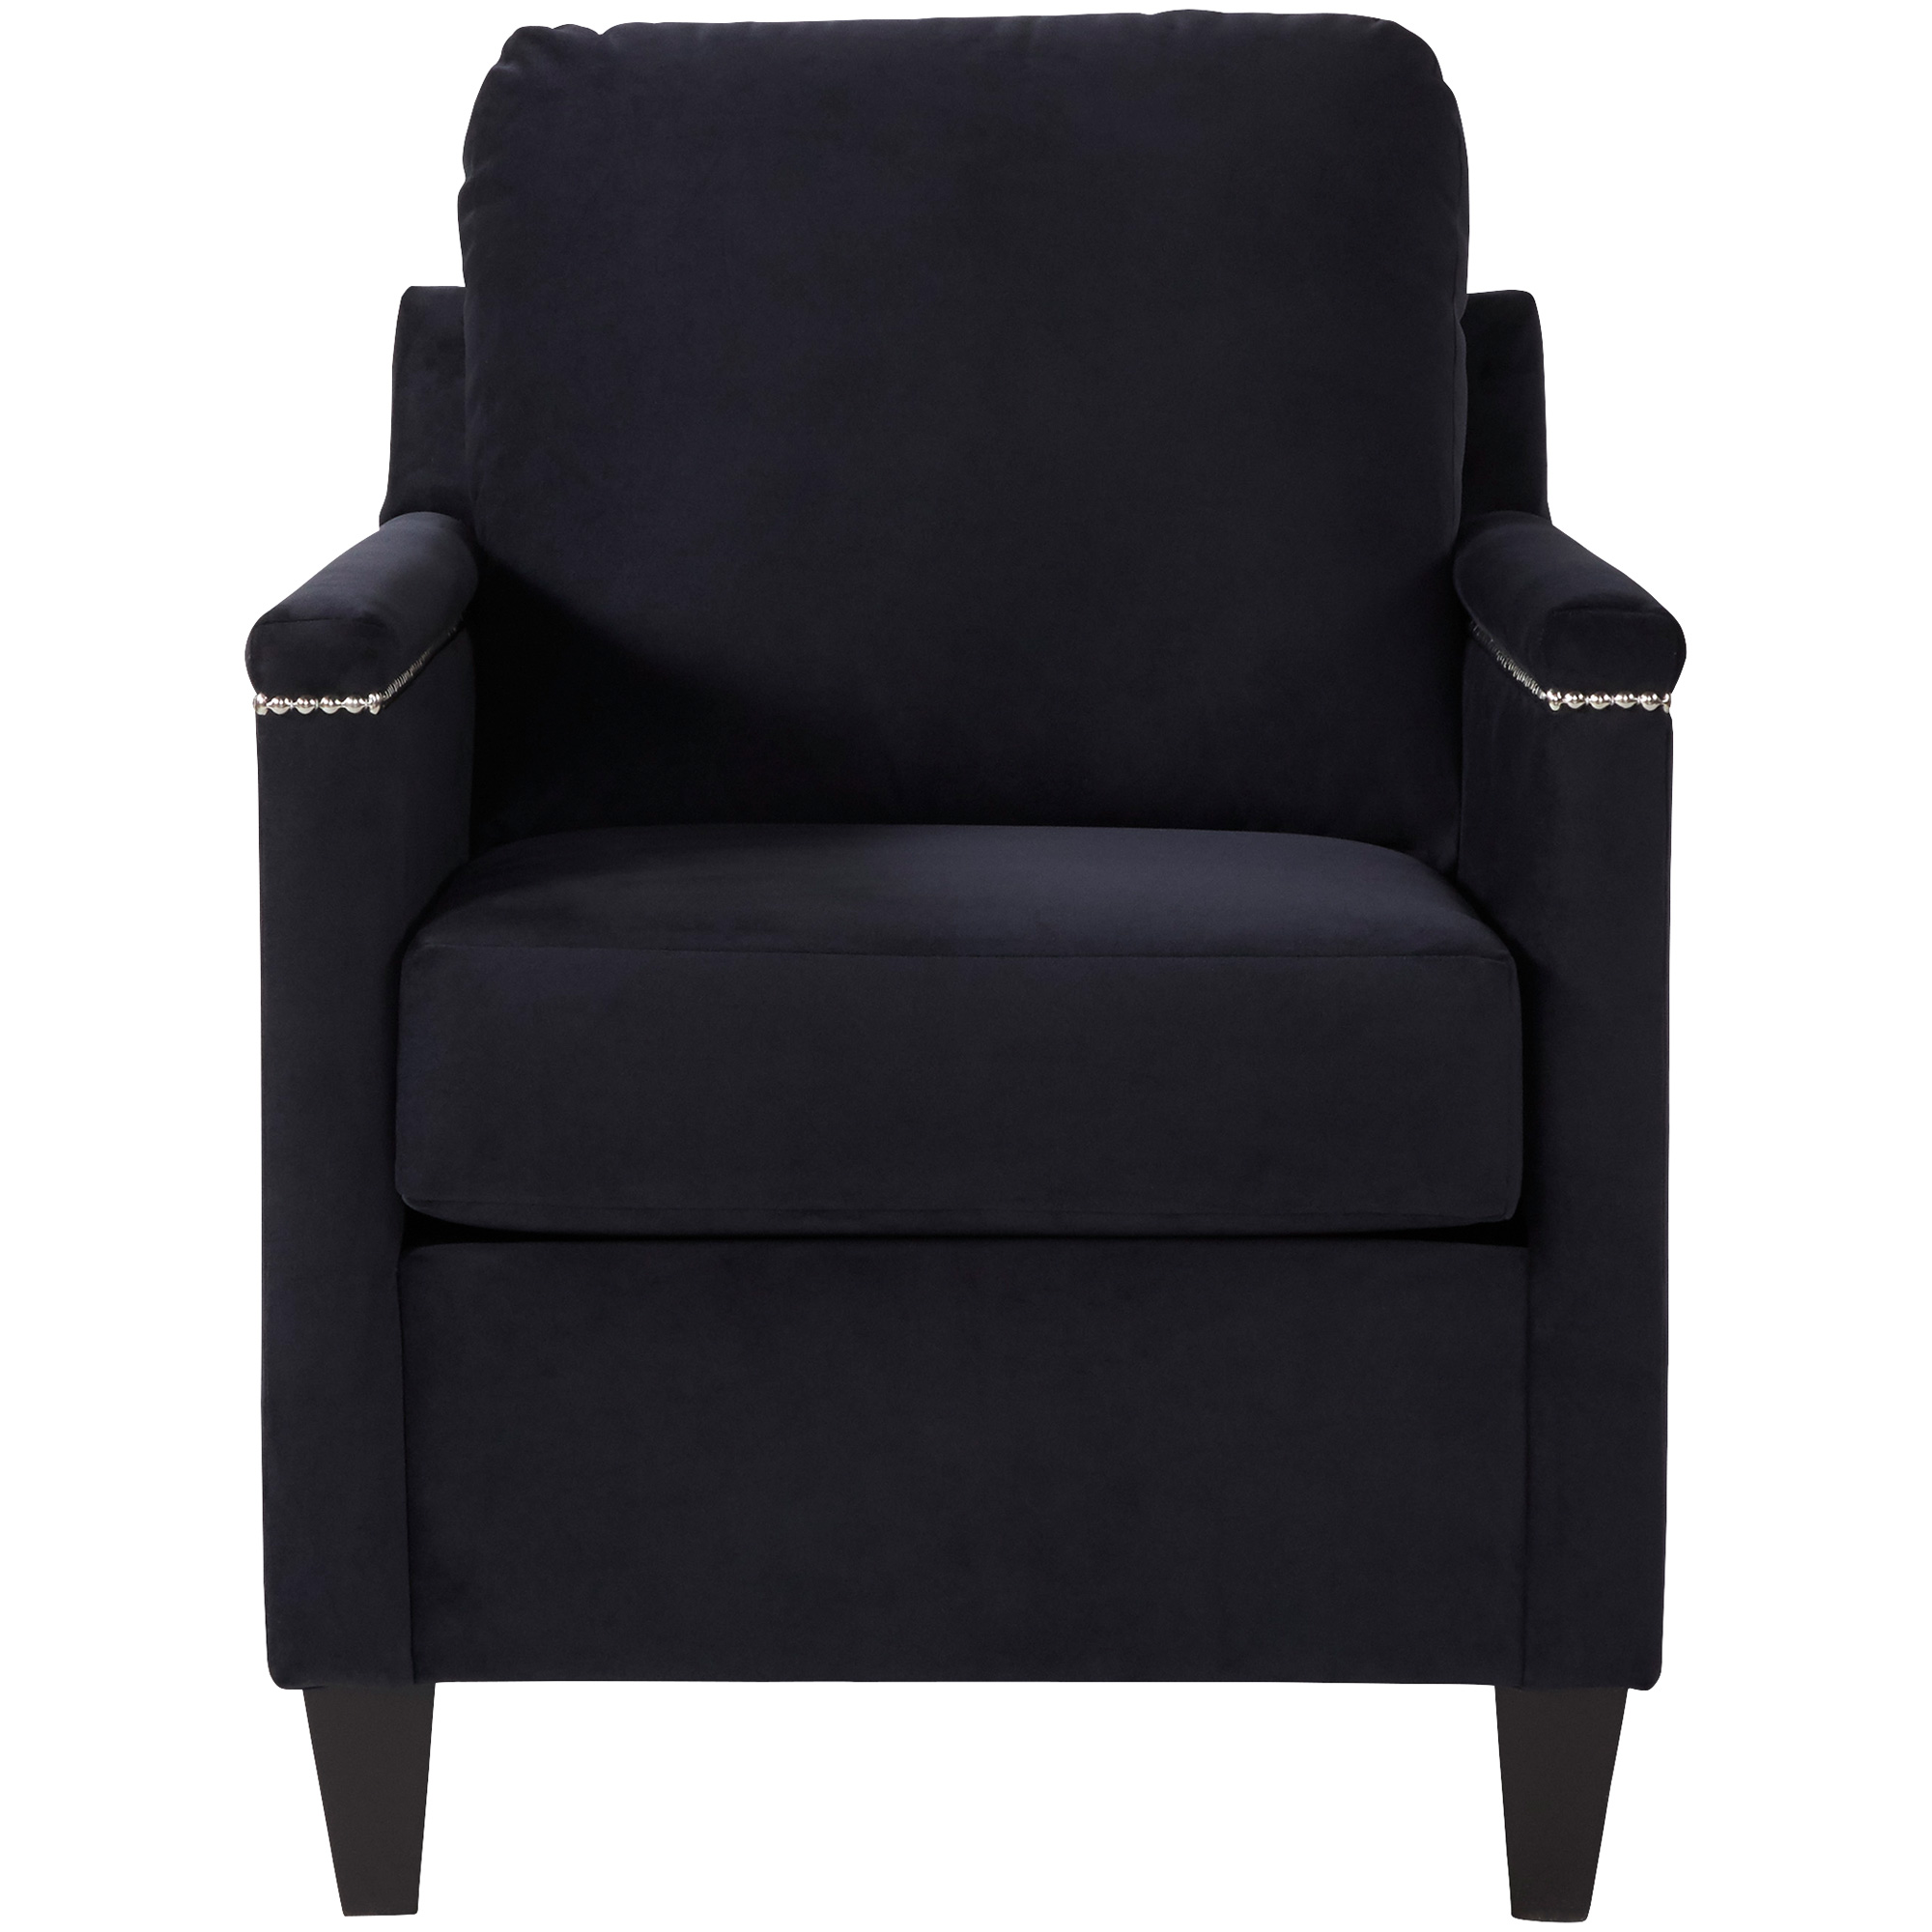 Serta Upholstery By Hughes Furniture | Bling Black Accent Chair